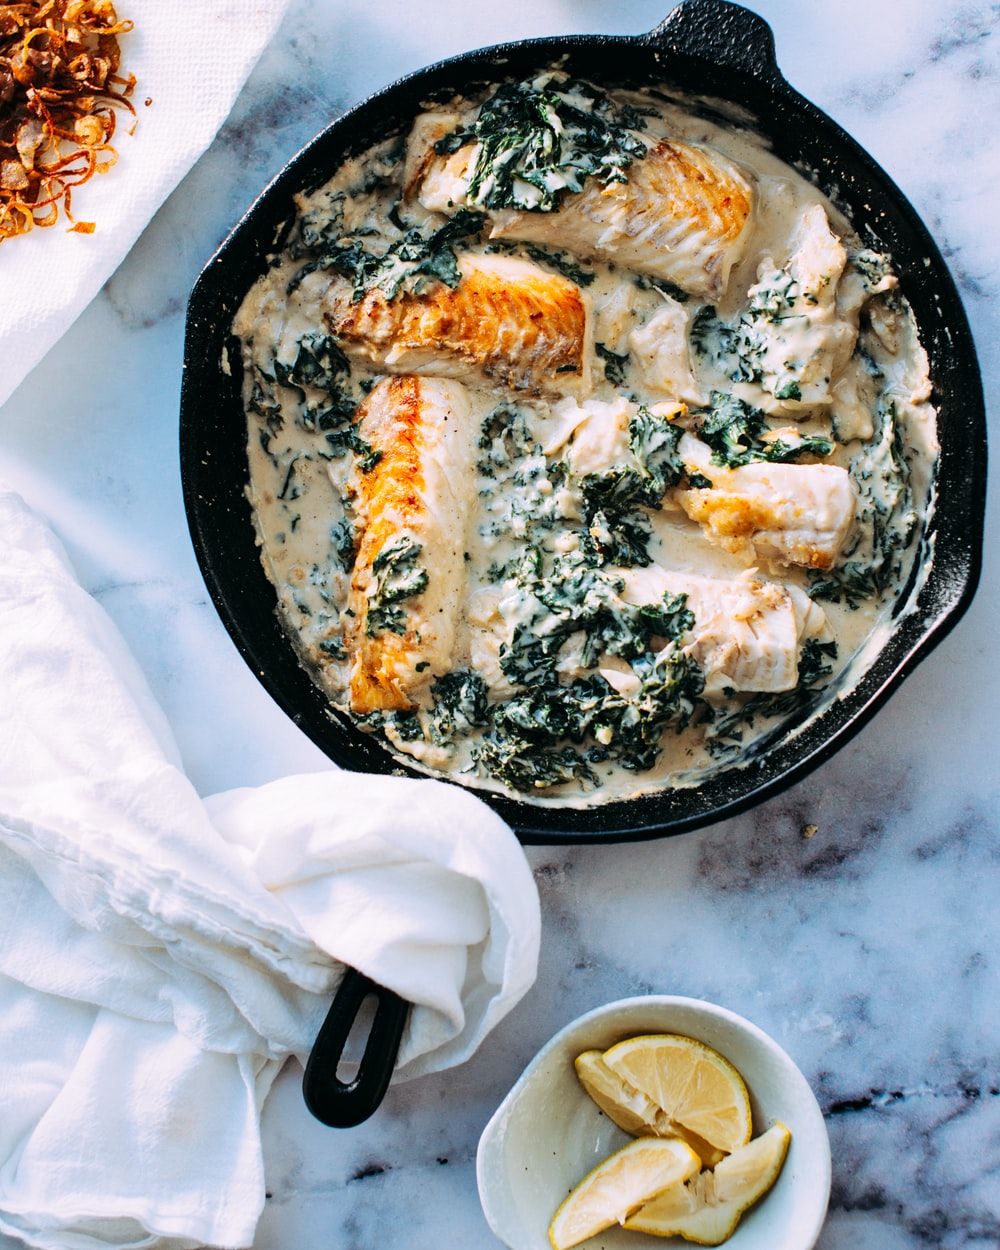 Cast Iron skillet with sauteed fish in a cream sauce with herbs